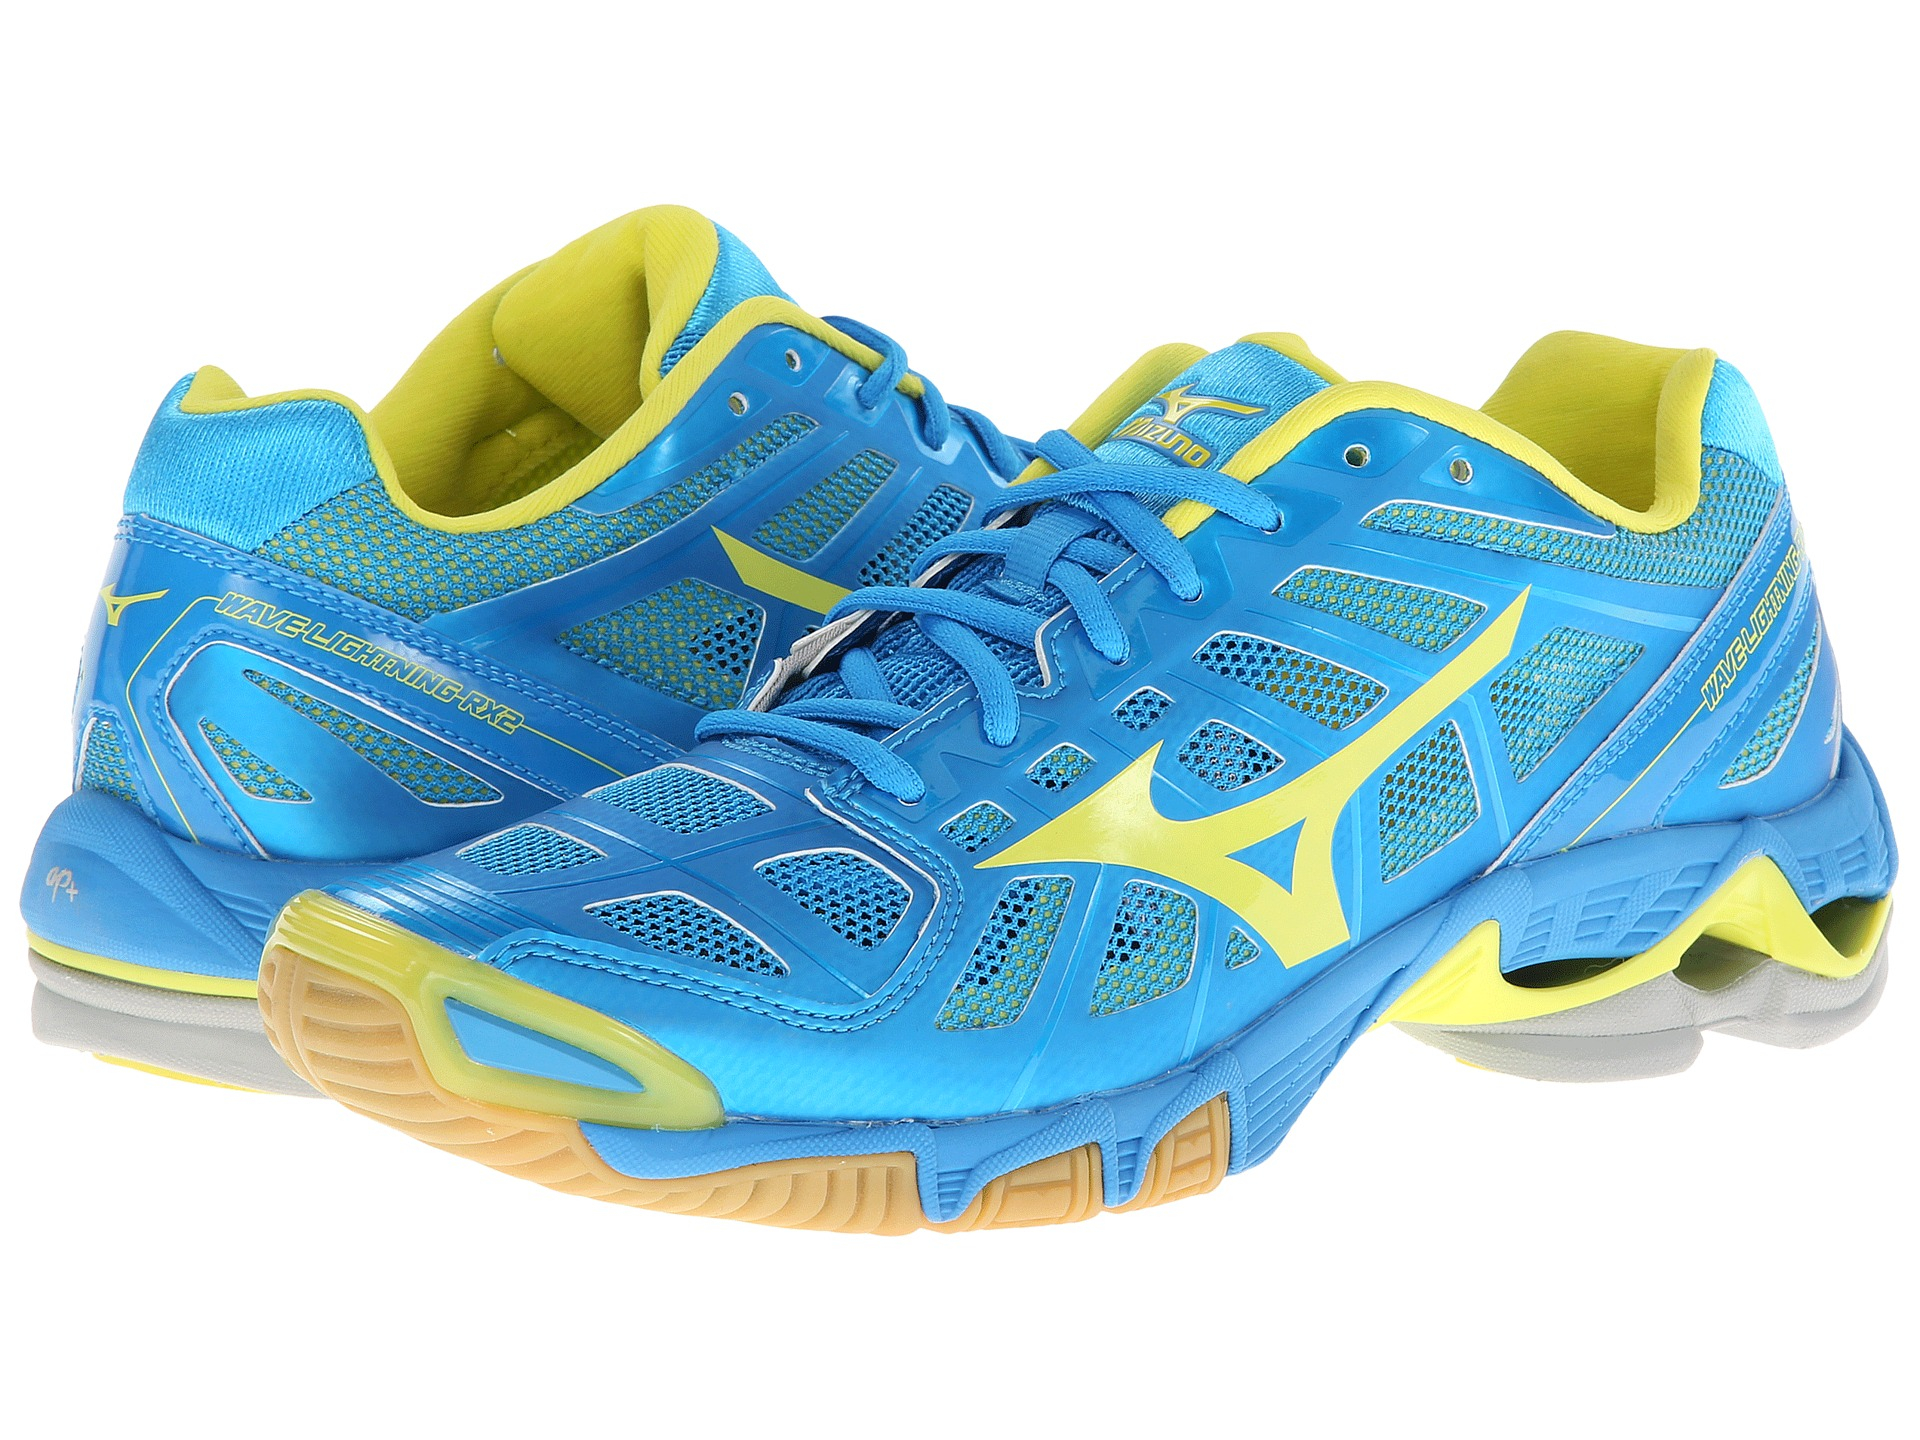 mizuno womens volleyball shoes size 8 x 3 inch homme jordan